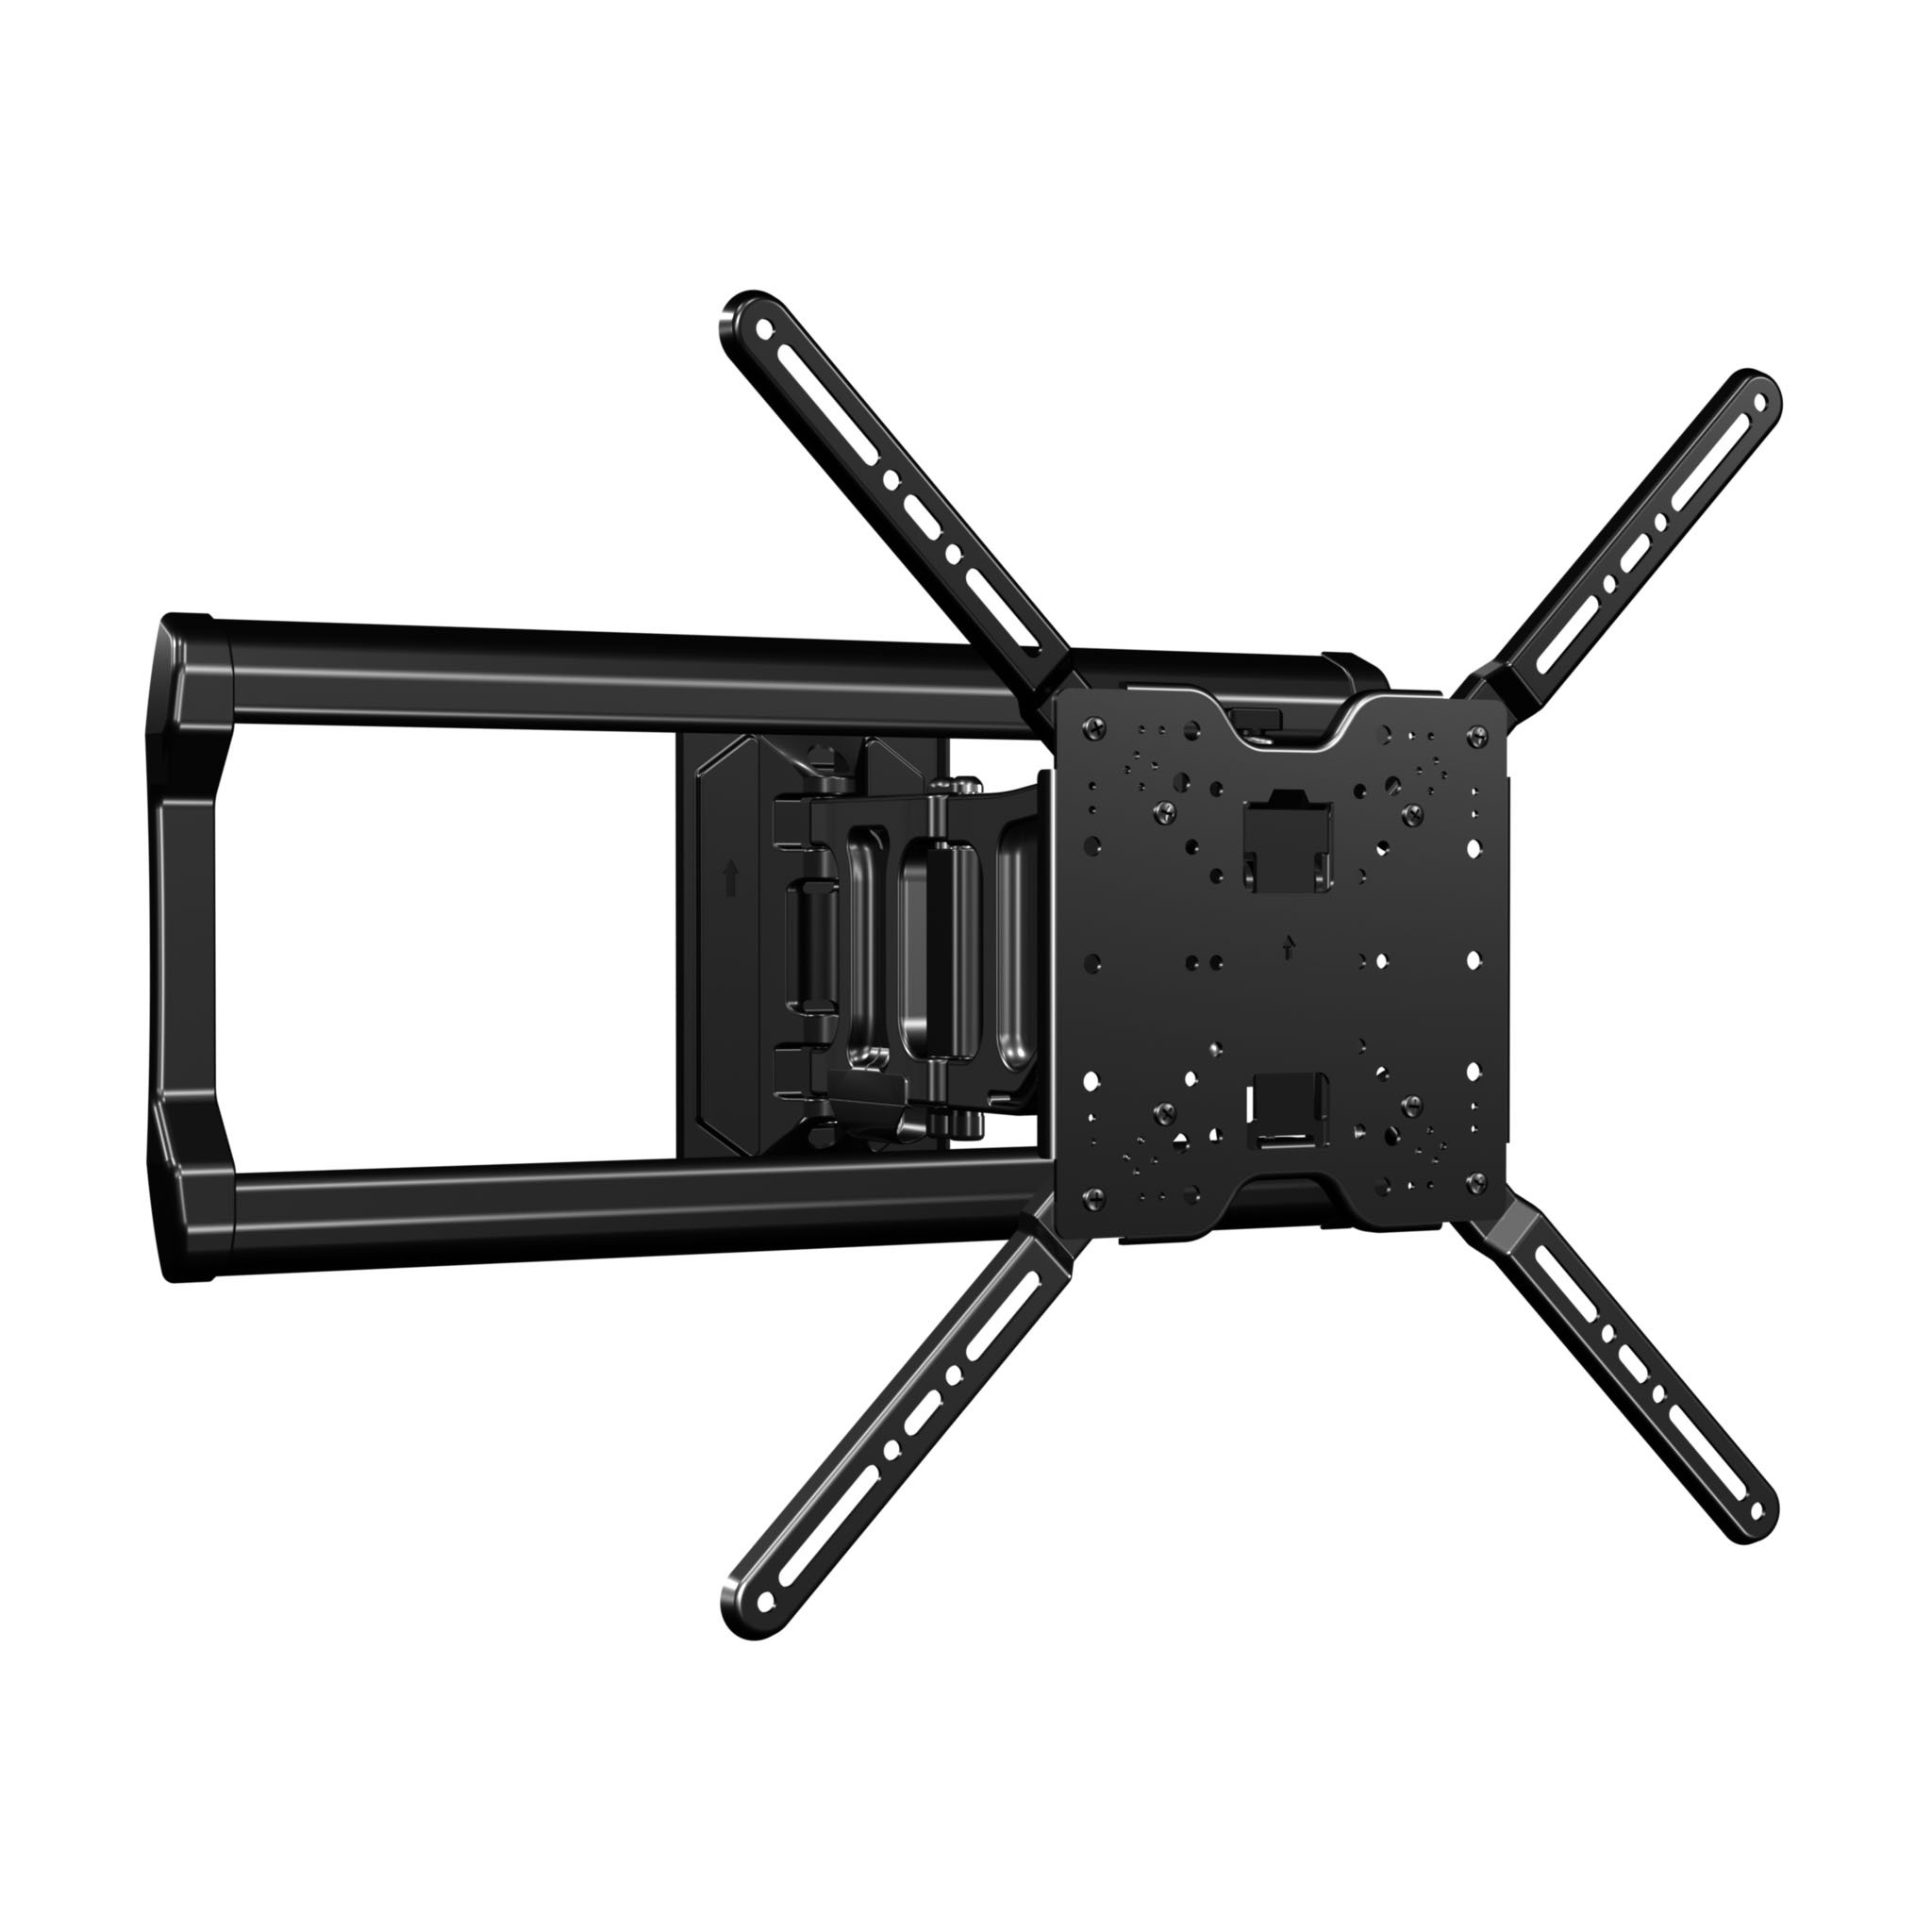 Sanus Full-Motion TV Wall Mount for 37'' to 80'' TVs Extends 18'' & Fits Studs Up to 24'' - Bracket fits most LED, LCD, OLED, and Plasma Flat Screen TVs w/ VESA Patterns up to 600 x 400 - OLF18-B1